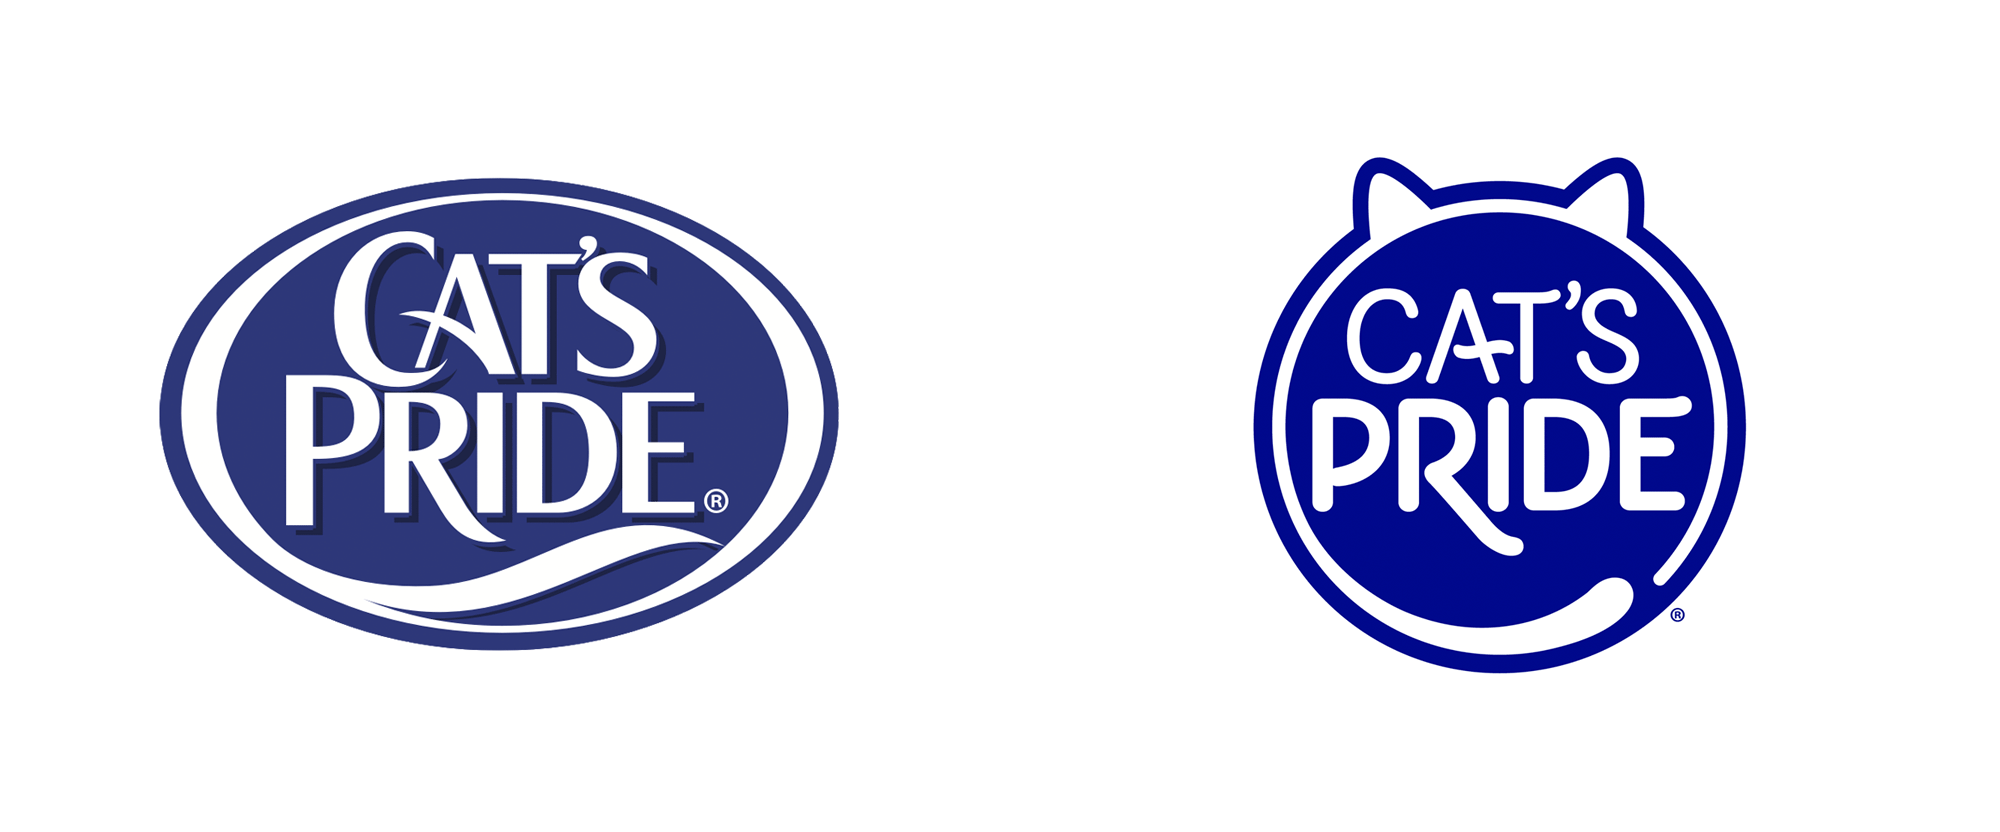 New Logo and Packaging for Cat's Pride